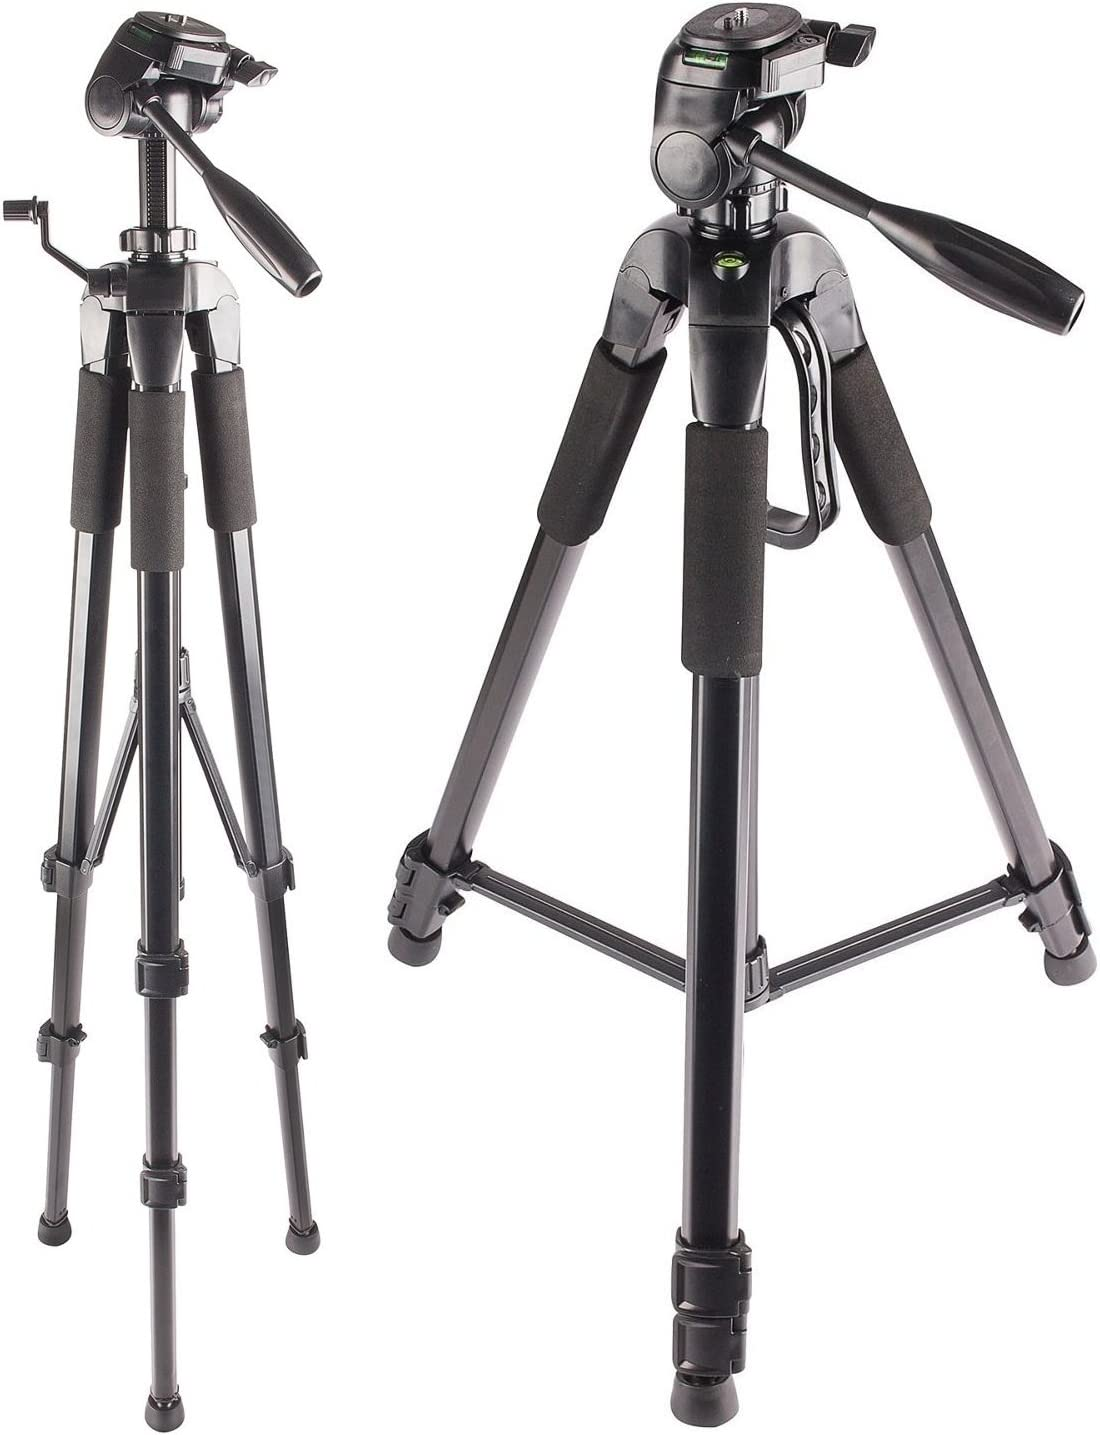 72-Inch Multi-Angle Tripod with Fluid Albuquerque Mall Head for Alpha depot - Sony a9